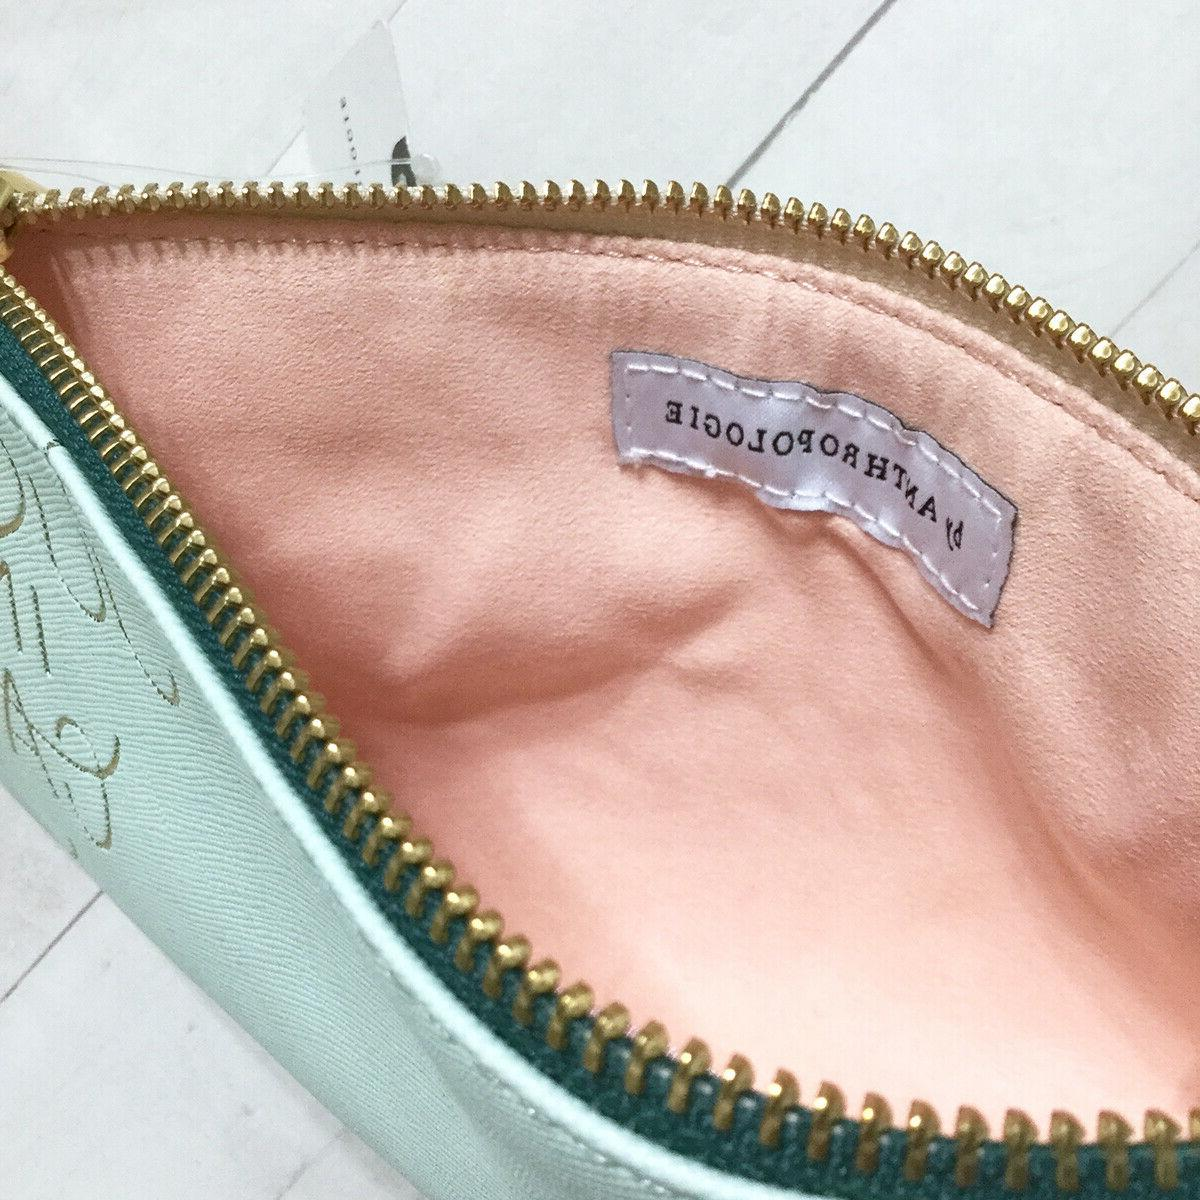 Anthropologie Zip Cosmetic Sea Leather